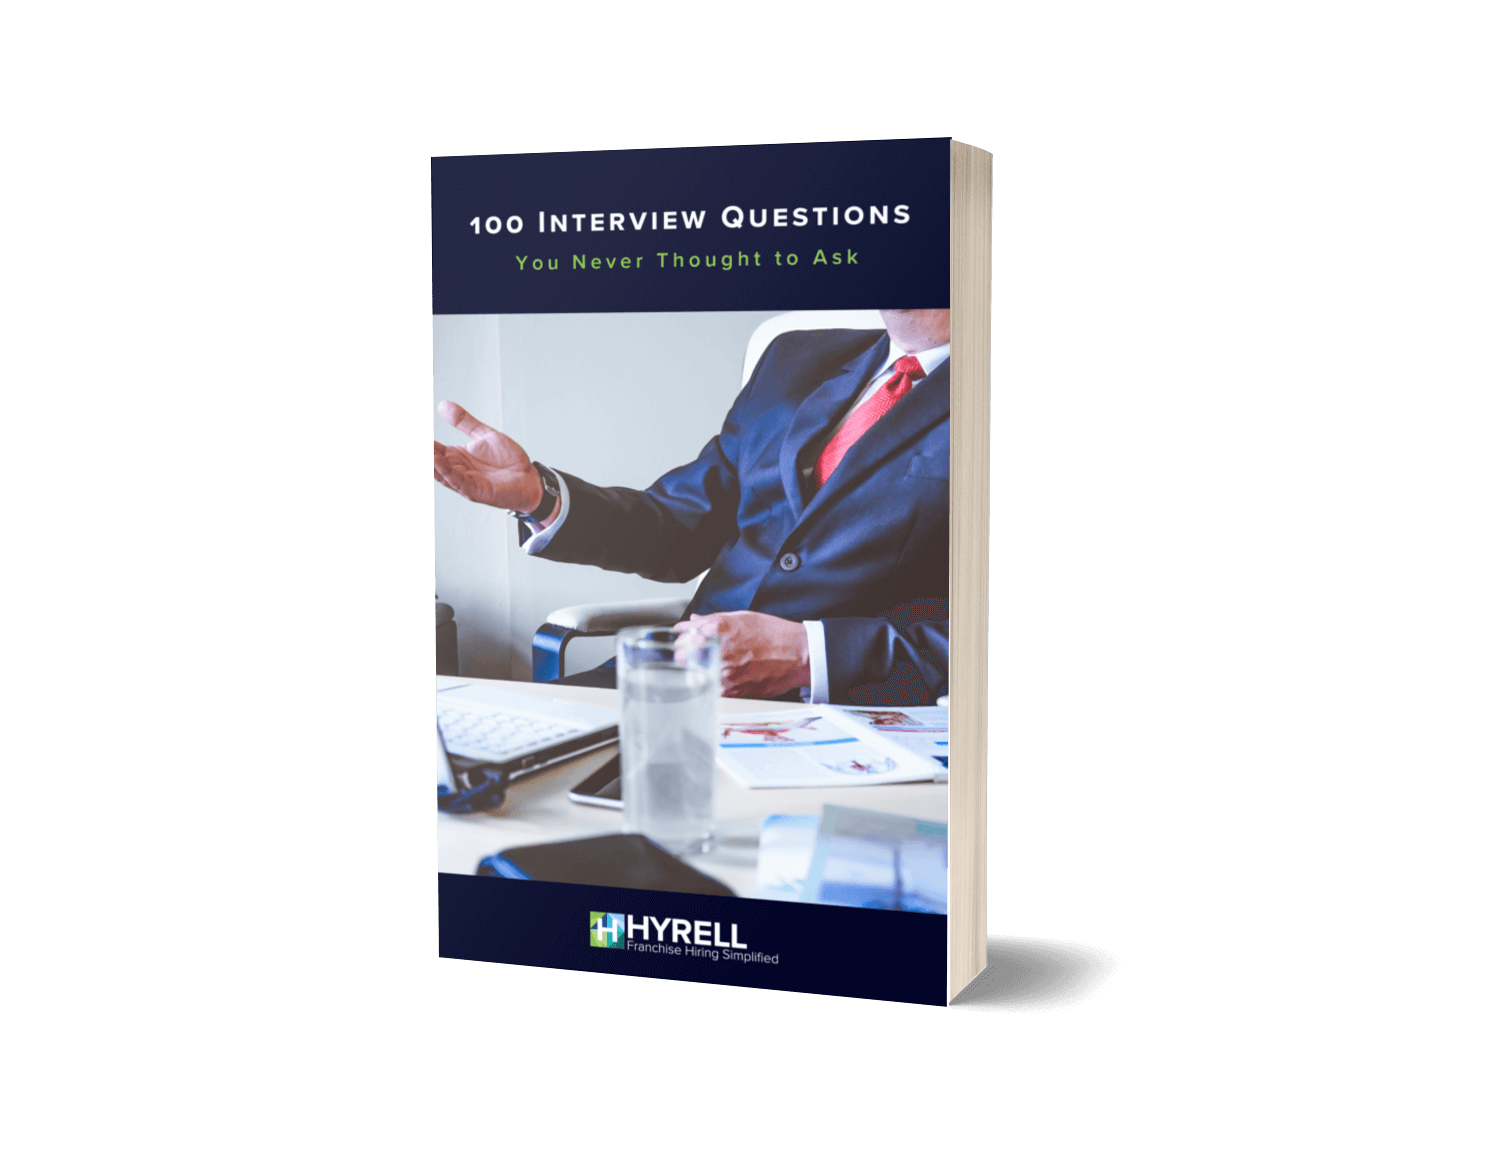 100 interview questions book cover